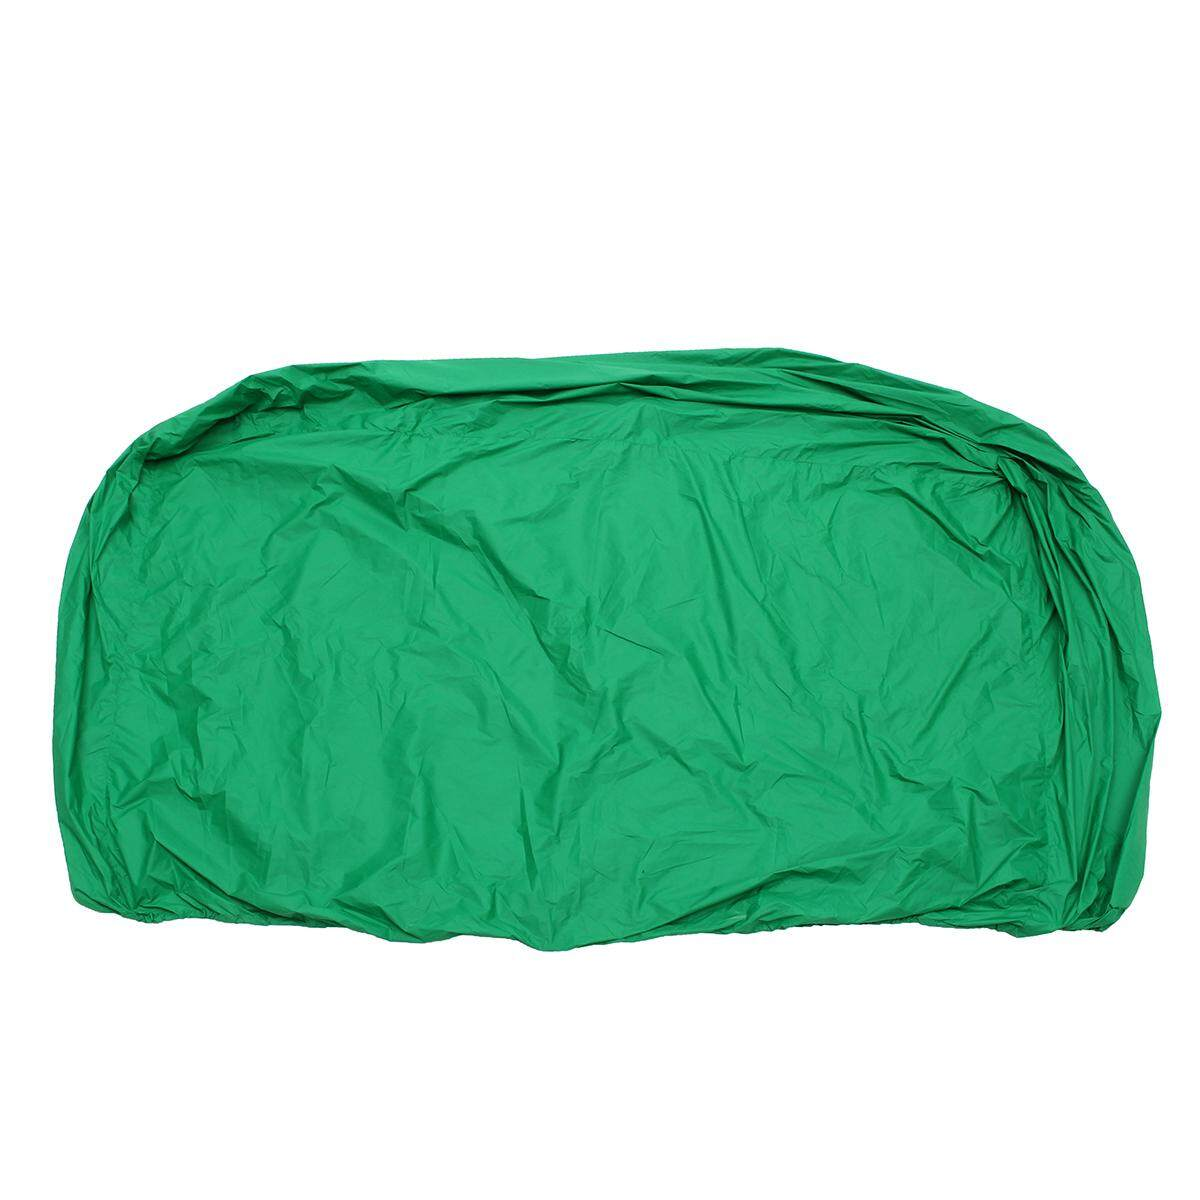 65 long x 40 wide x 44 high Lawn Tractor Cover